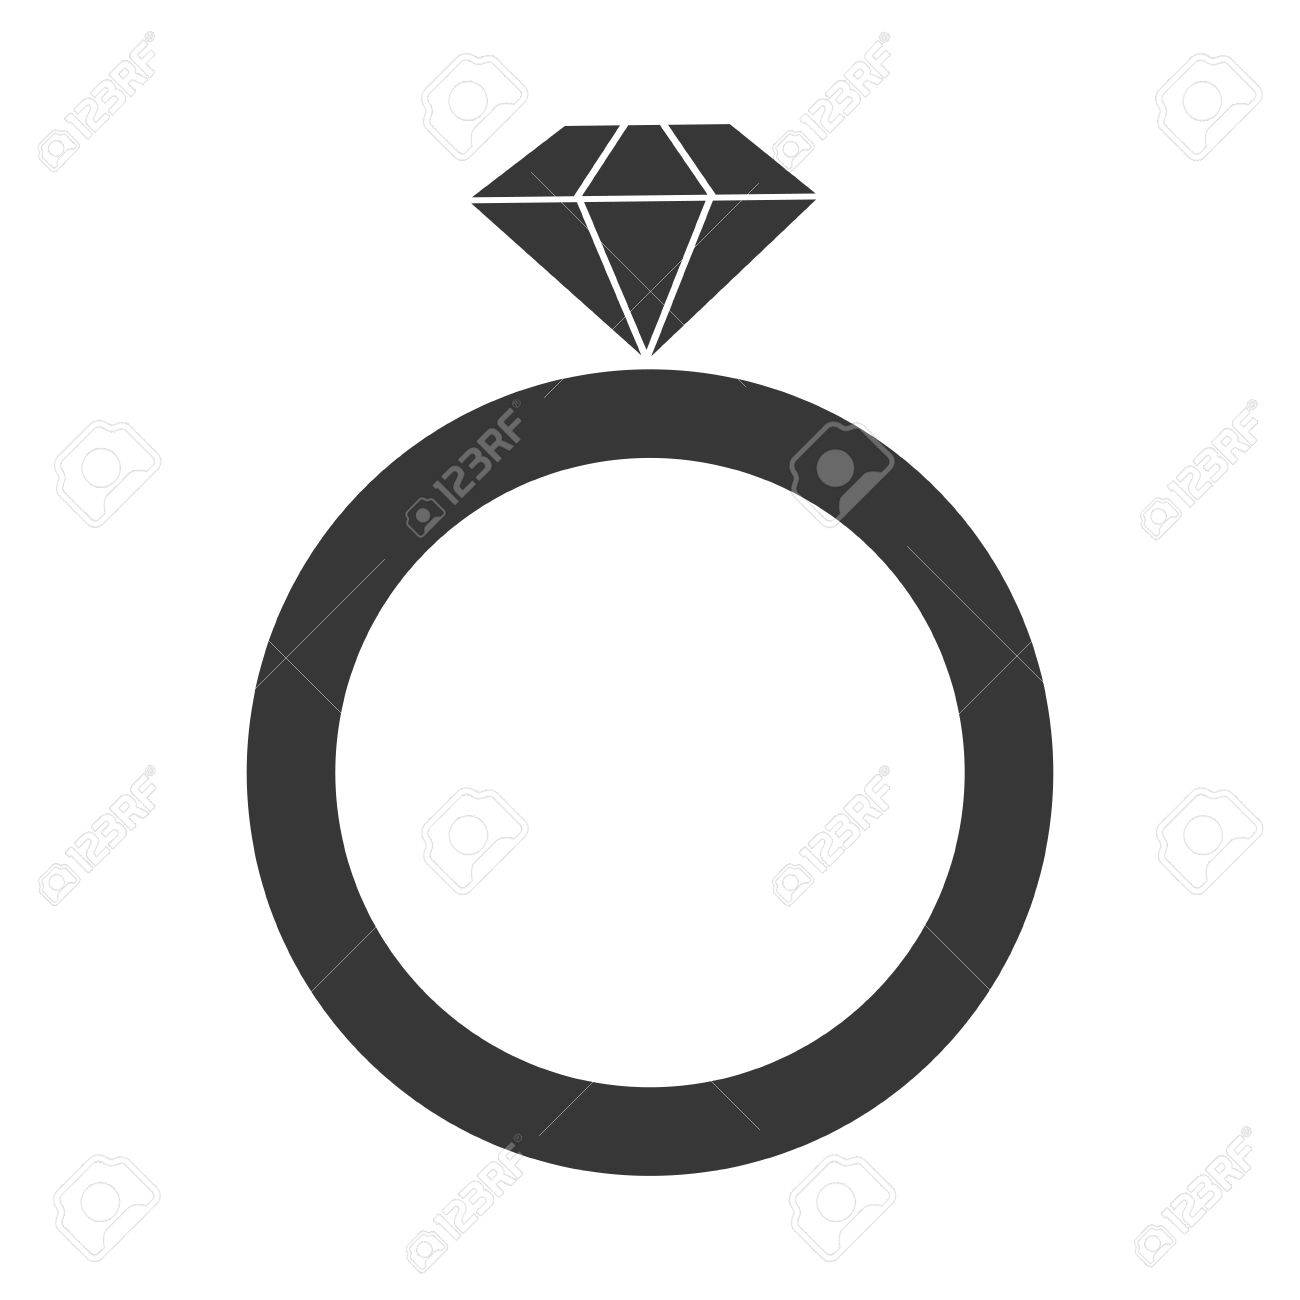 1300x1300 Grey Simple Flat Design Engagement Ring Vector Illustration